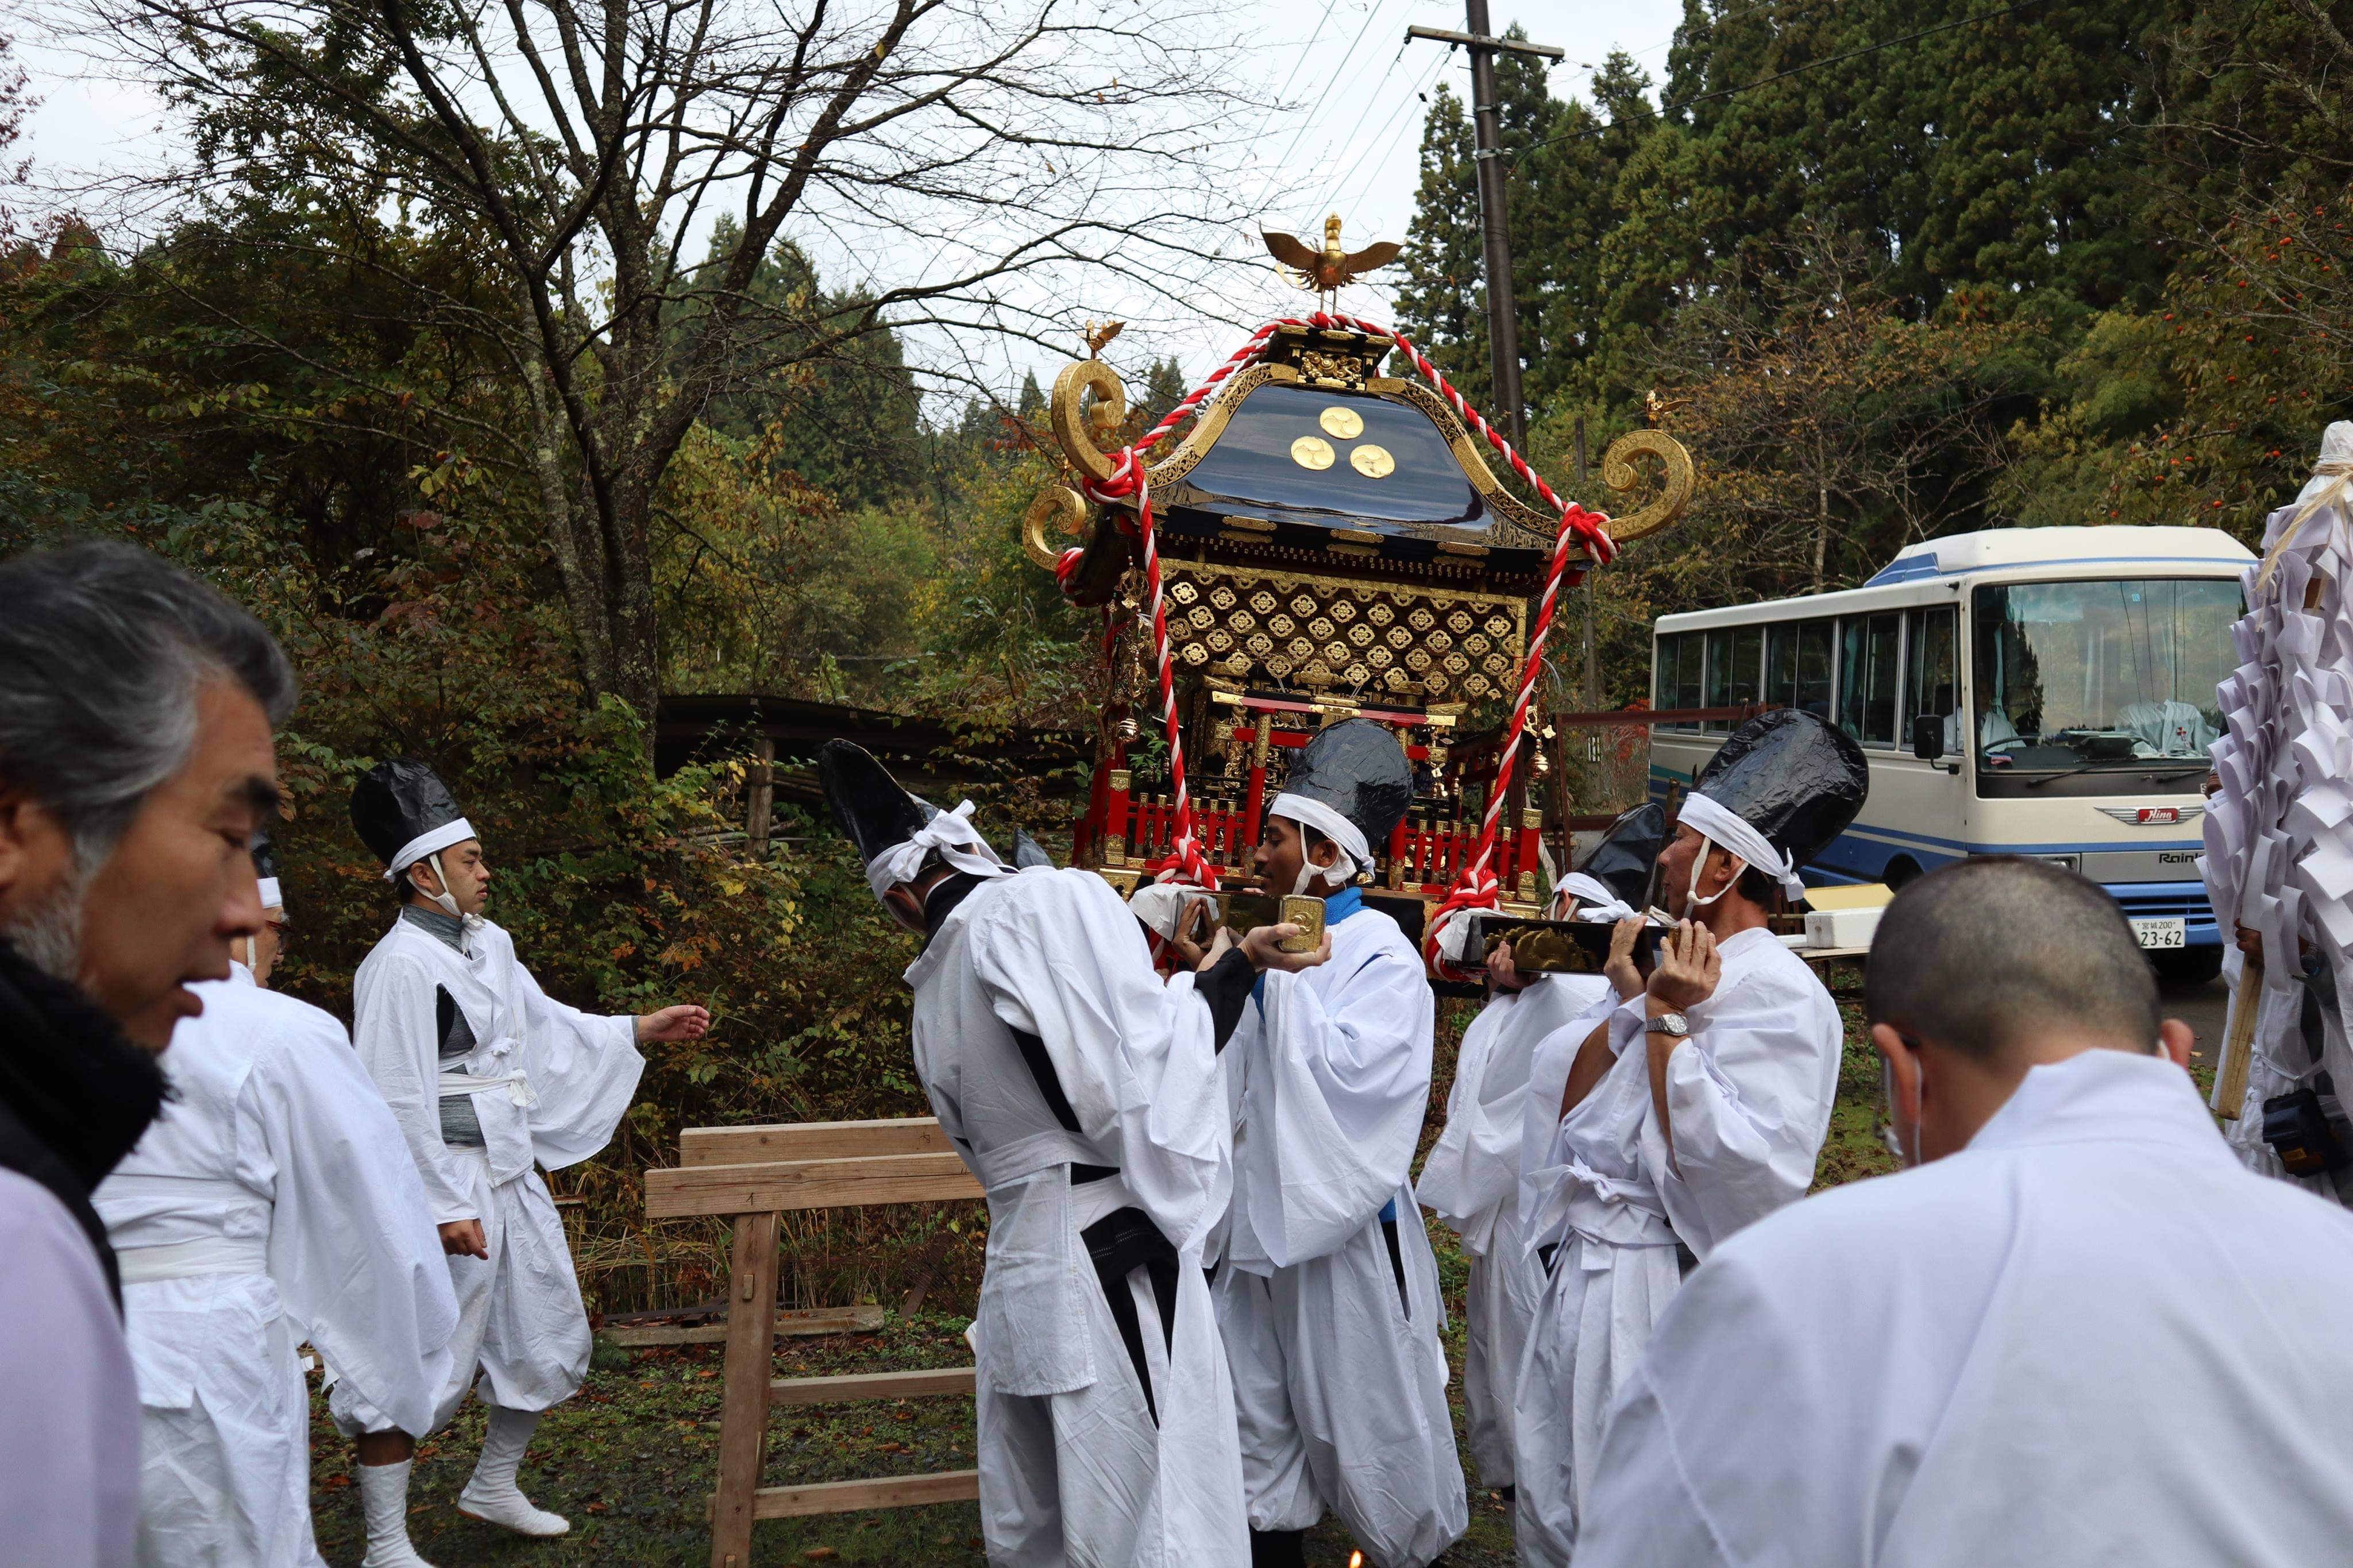 Picture of the young men in white robes attempting to pick up the portable shrine